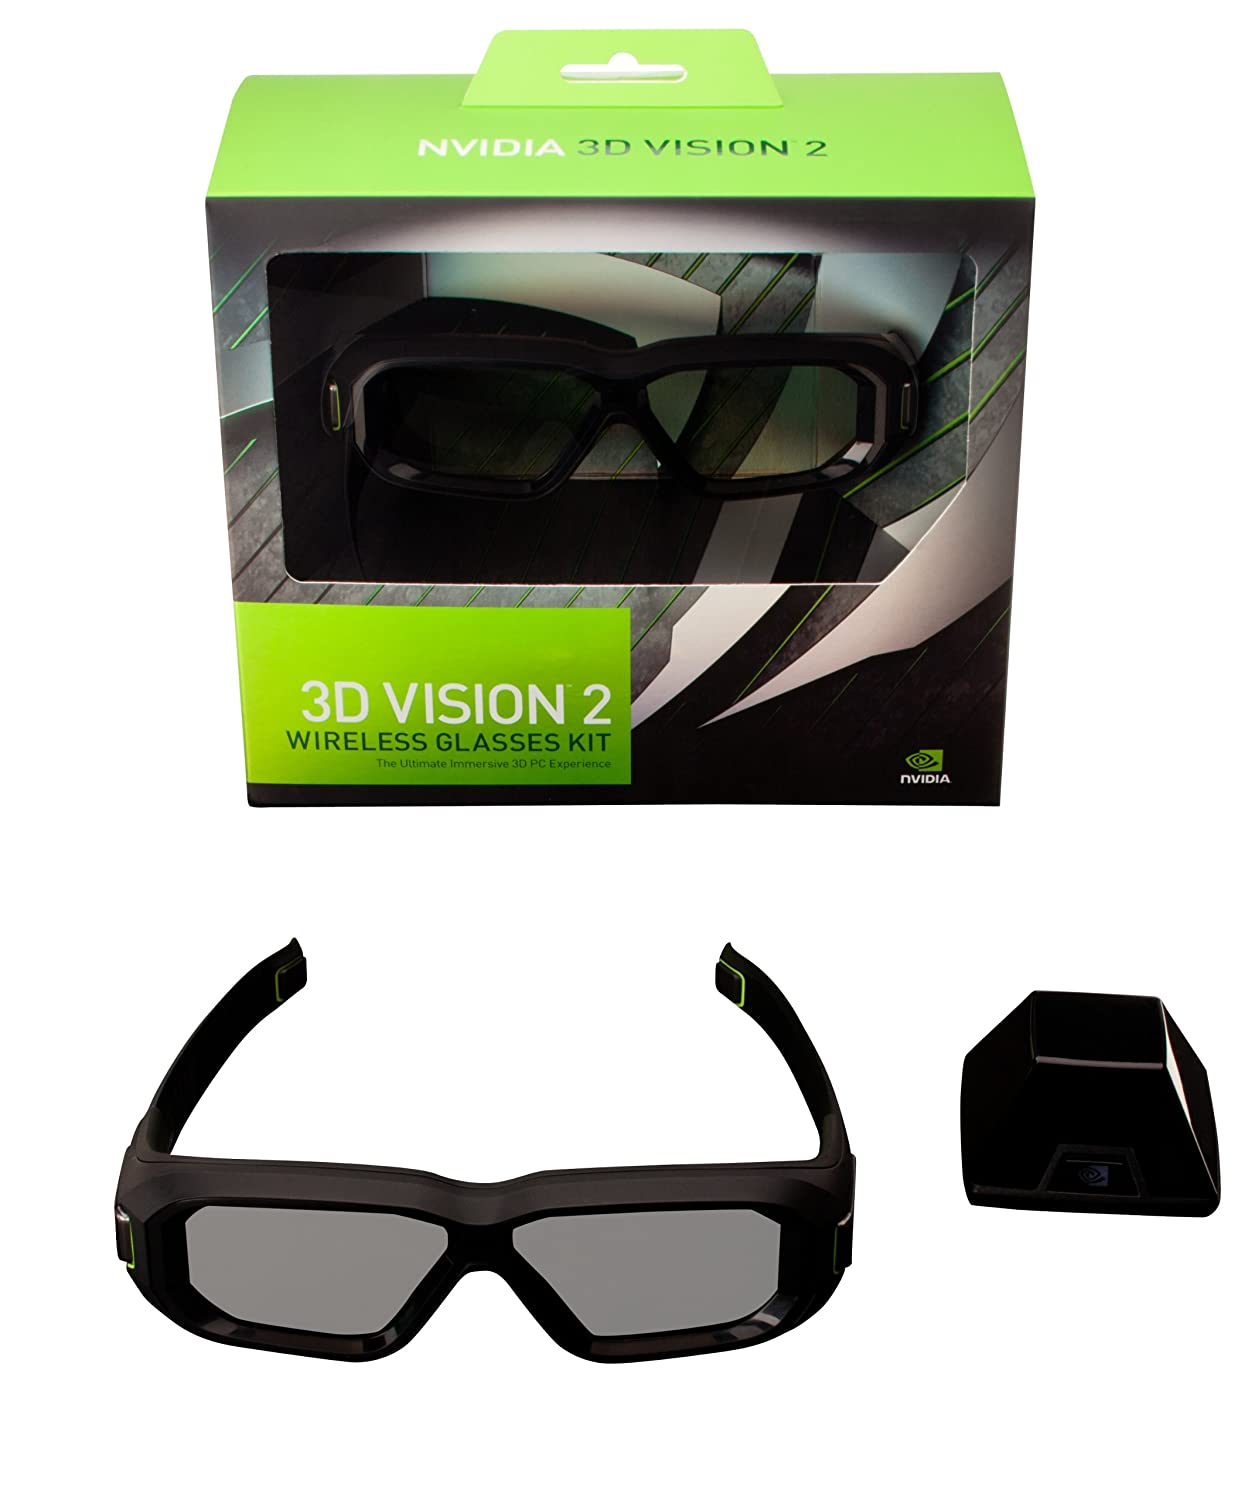 nvidia 3d vision 2 glasses instructions